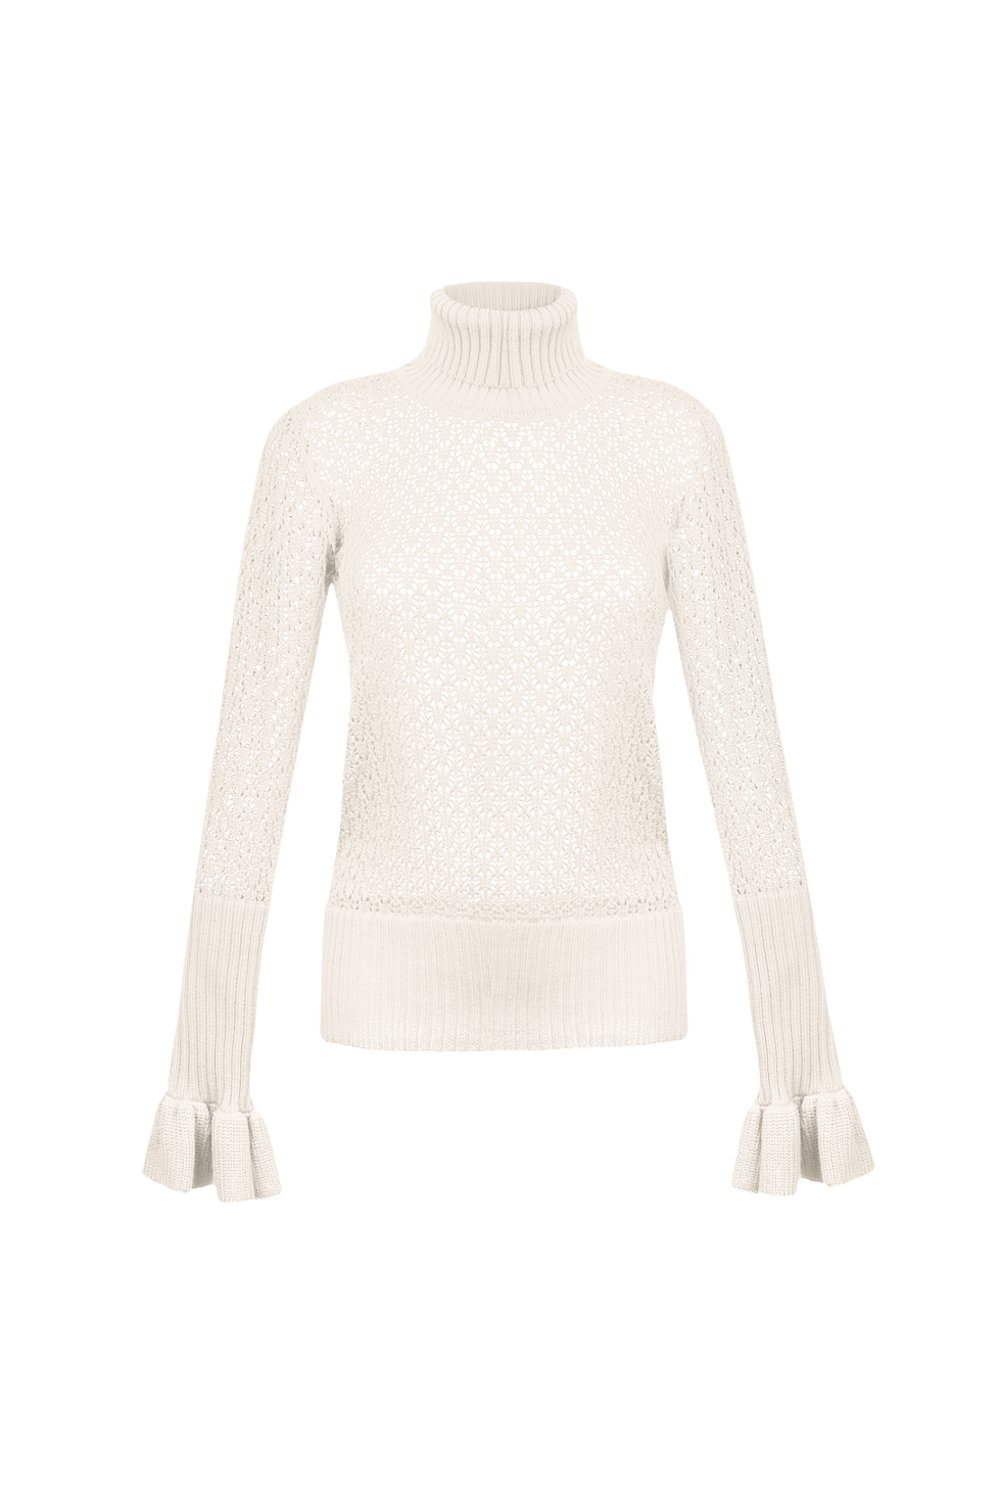 Favorite knit Turtleneck - turtleneck